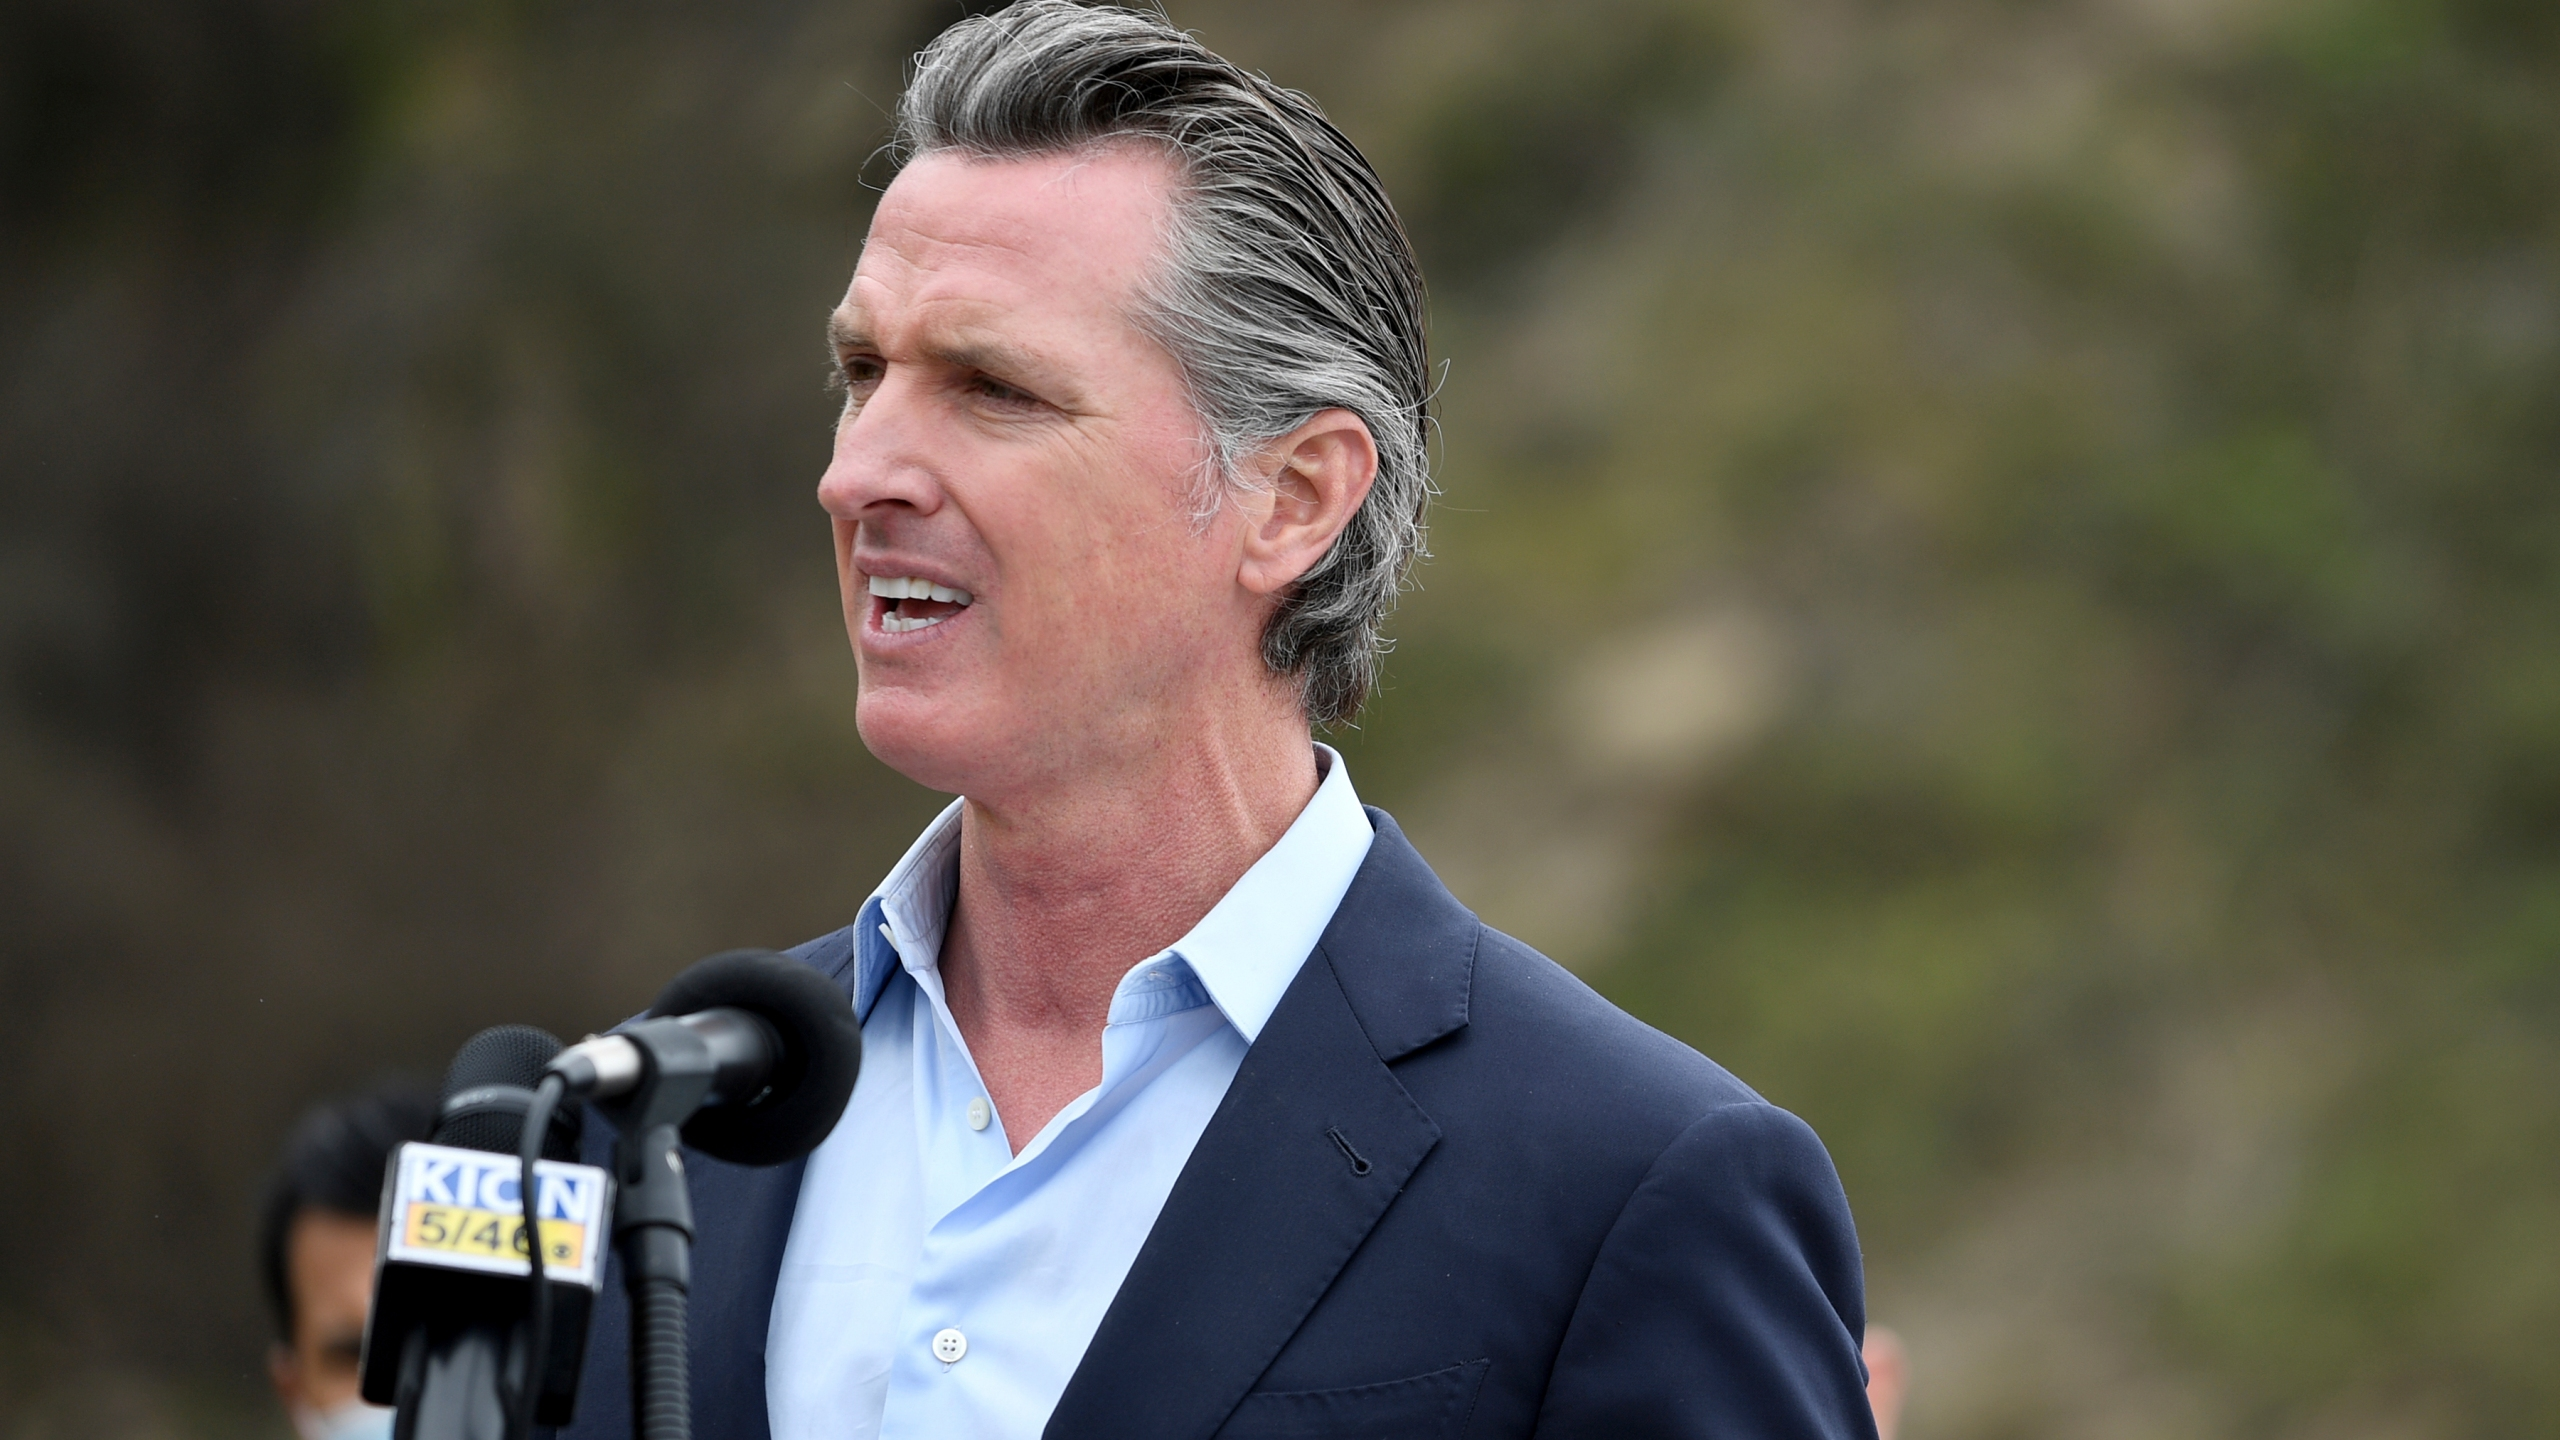 In this April 23, 2021, file photo, California Gov. Gavin Newsom speaks during a press conference in Big Sur, Calif. California on Saturday is increasing early release credits for tens of thousands of inmates including violent and repeat felons as it further trims the population of what once was the nation's largest state correctional system. Officials announced in mid-April that they will close a second prison as a result of the dwindling population, fulfilling a promise by Newsom. (AP Photo/Nic Coury, File)